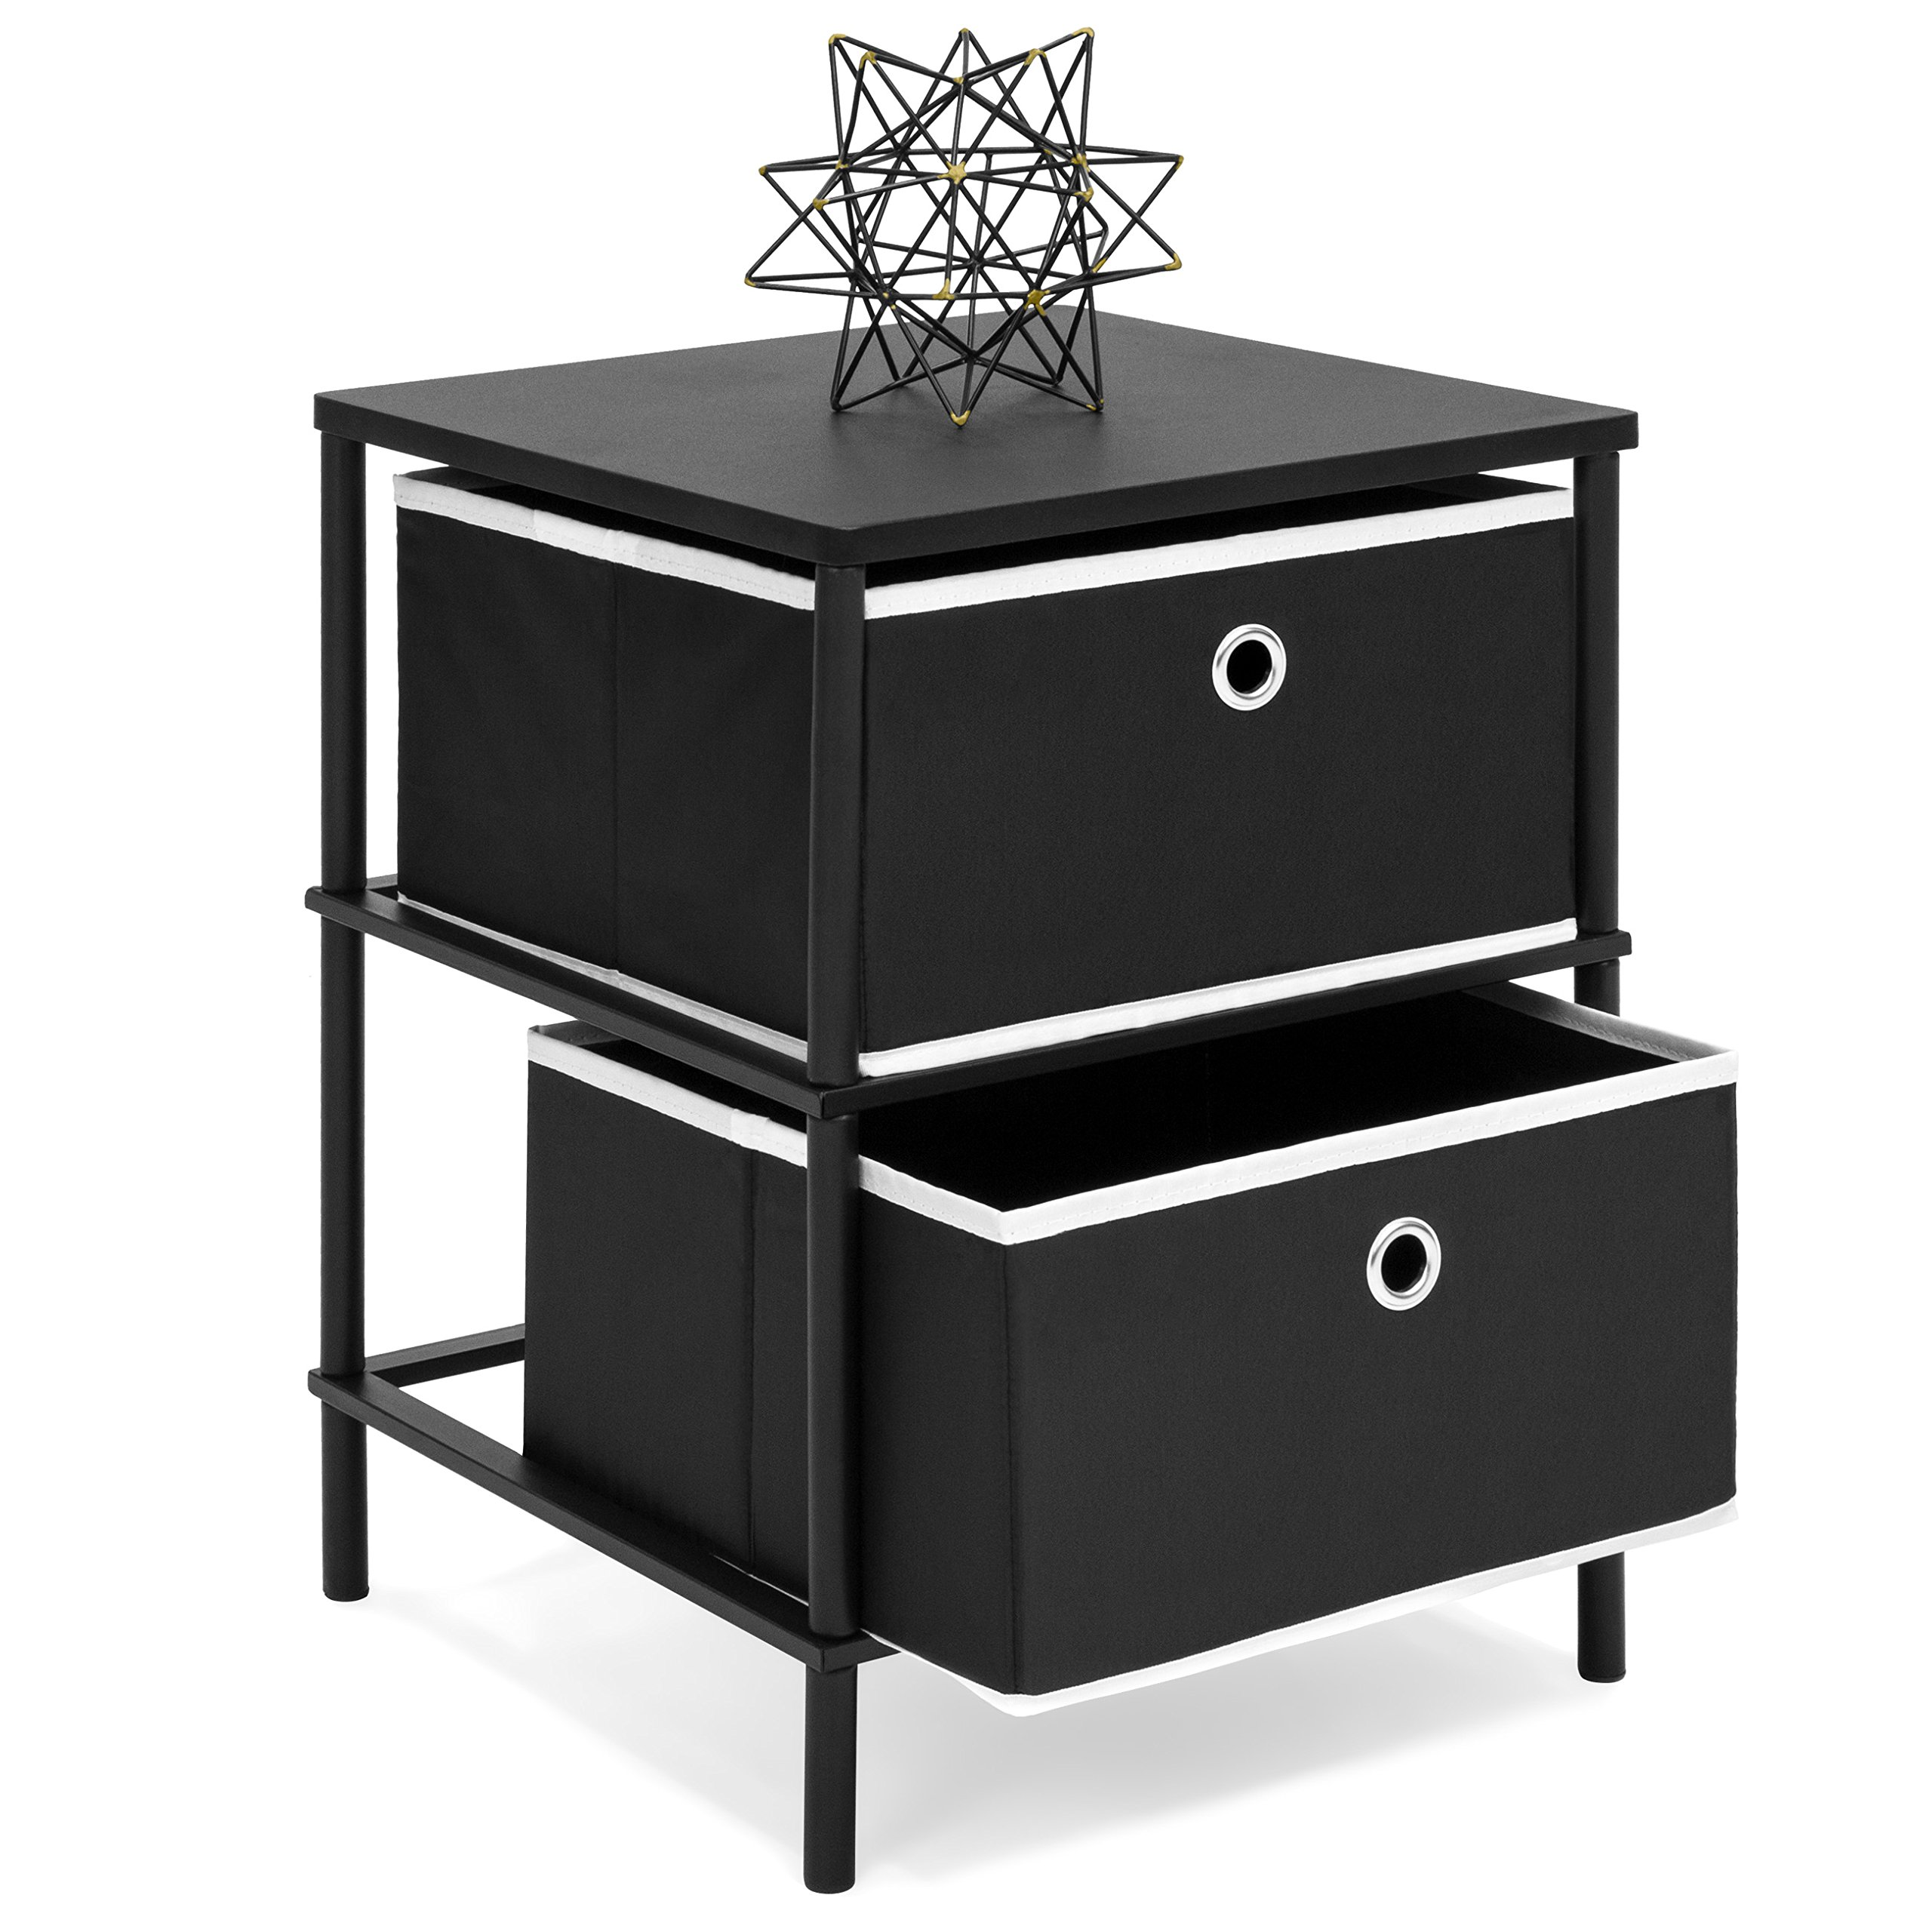 Best Choice Products Bedroom Nightstand End Side Table with 2 Storage Drawers, Black